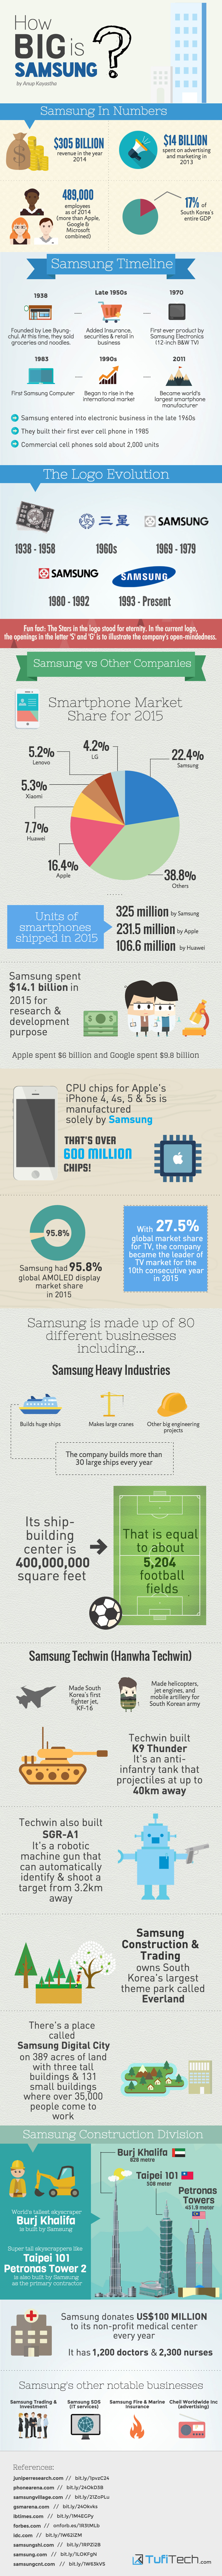 How Big Is Samsung? - Infographic